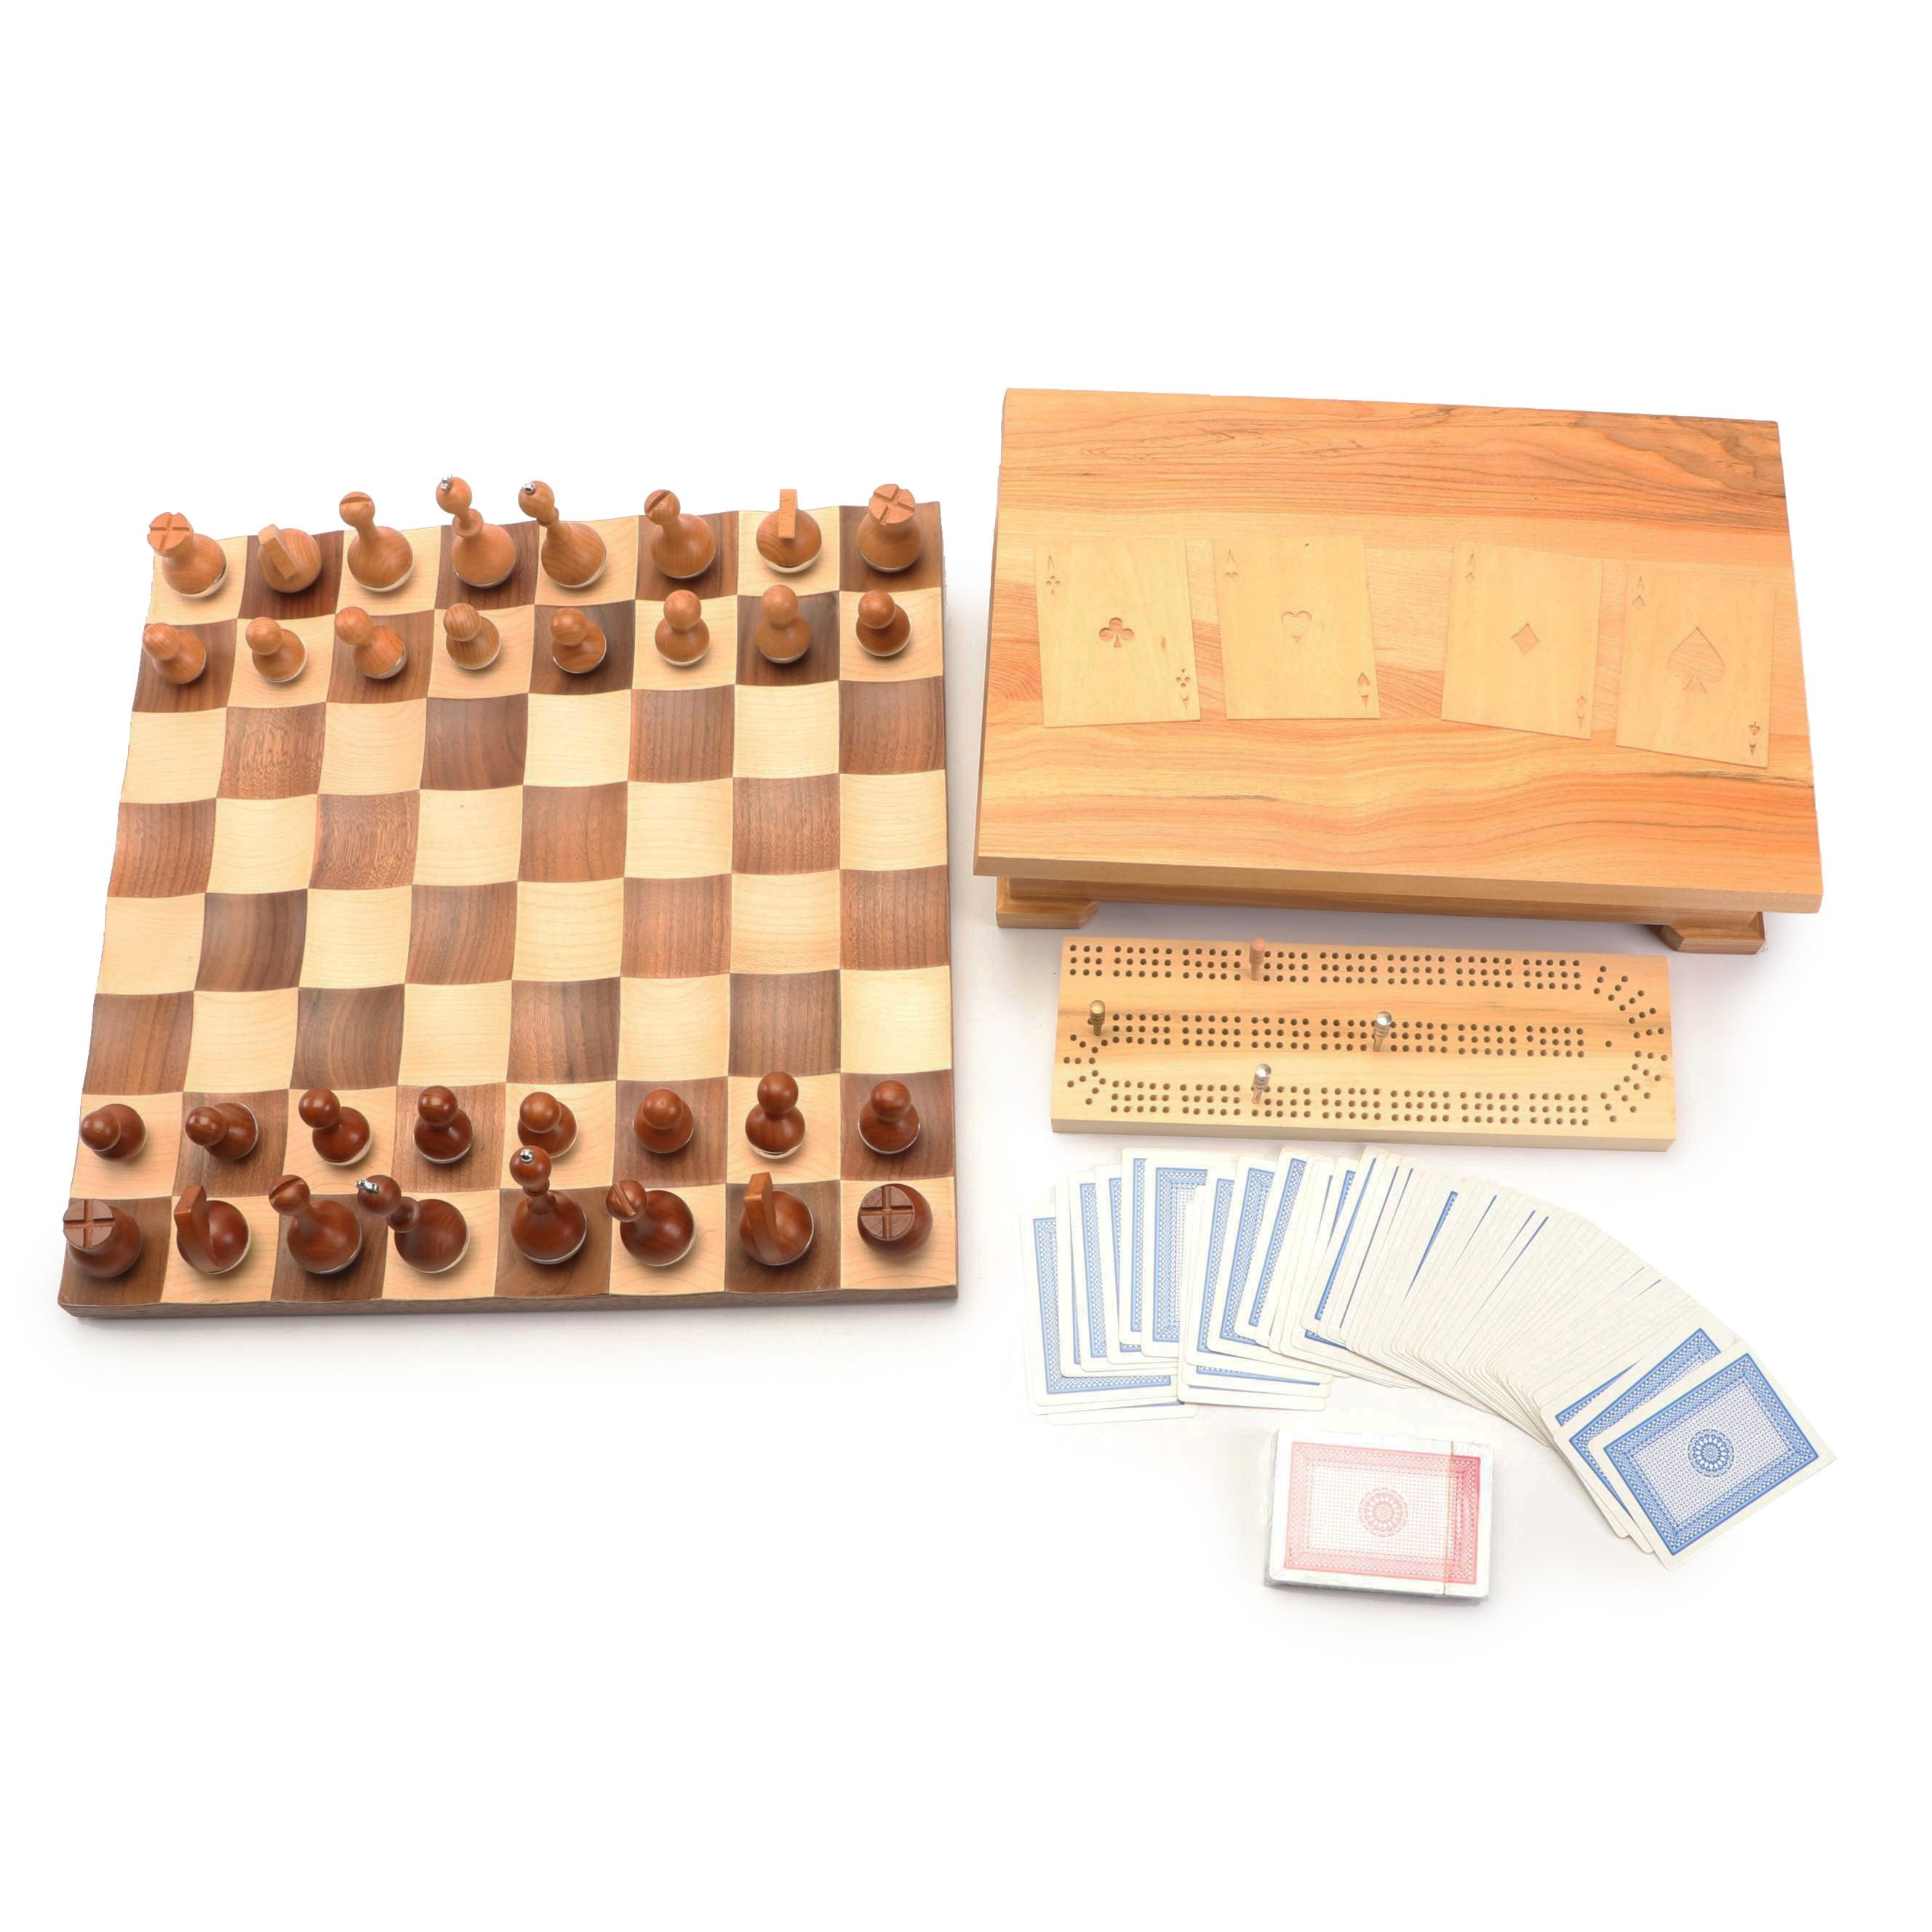 Wobble Piece Chess Board and Cribbage Set